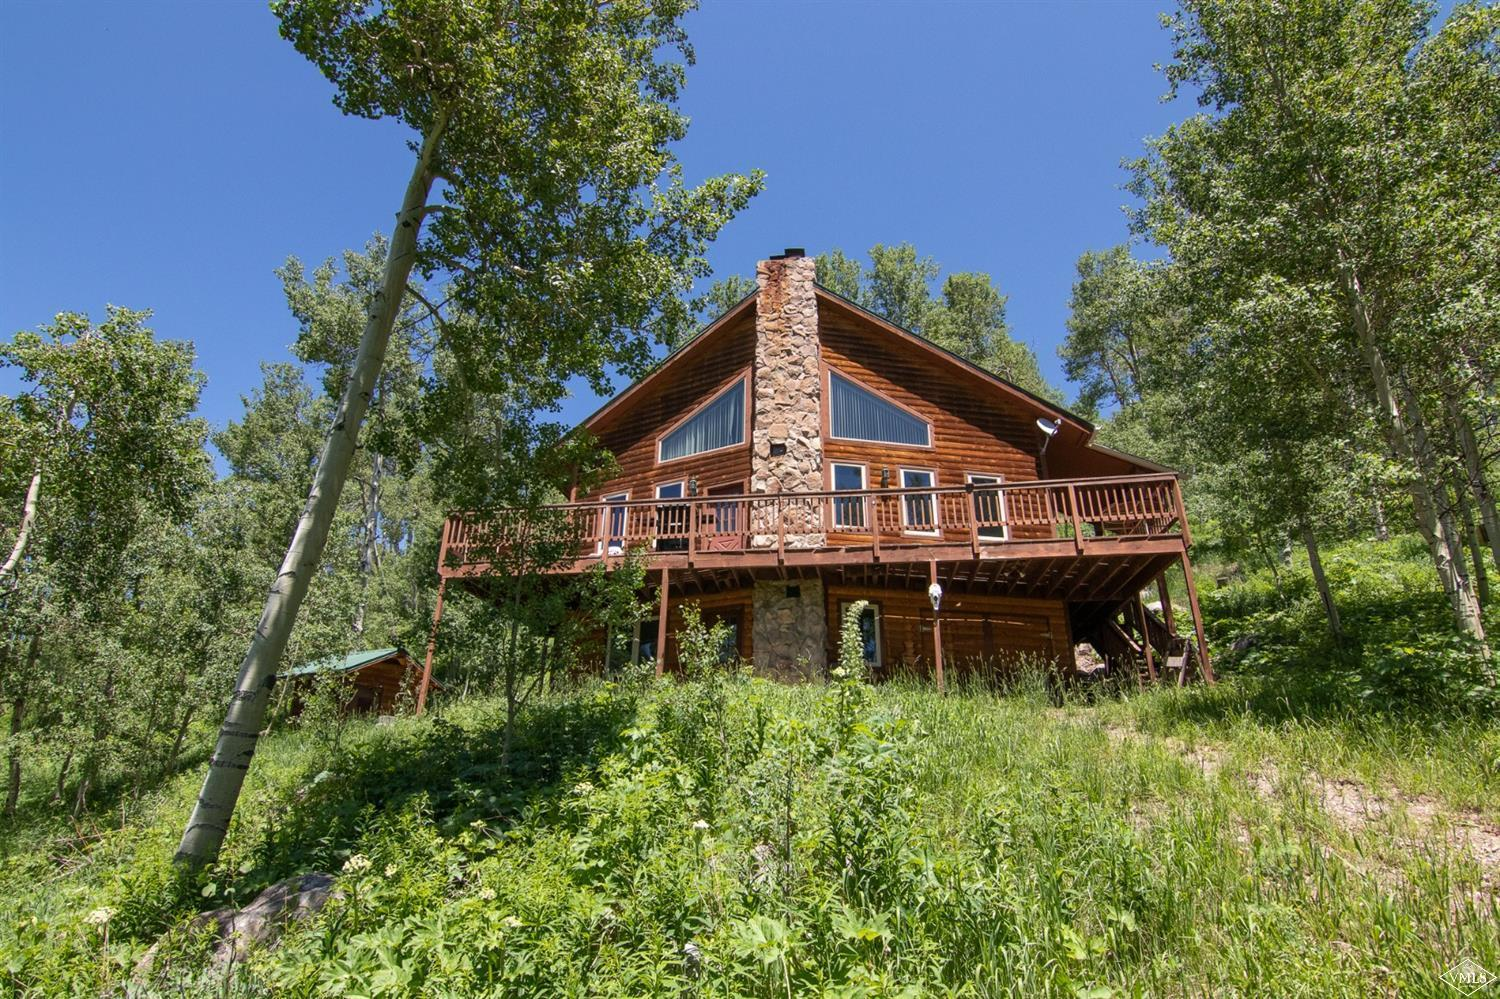 Your private cabin in the woods. This 3 bedroom/2 bathroom is your escape to the quintessential mountain town of Fulford. Perfect for a getaway or base-camp for adventures in the National Forest and the Holy Cross Wilderness.